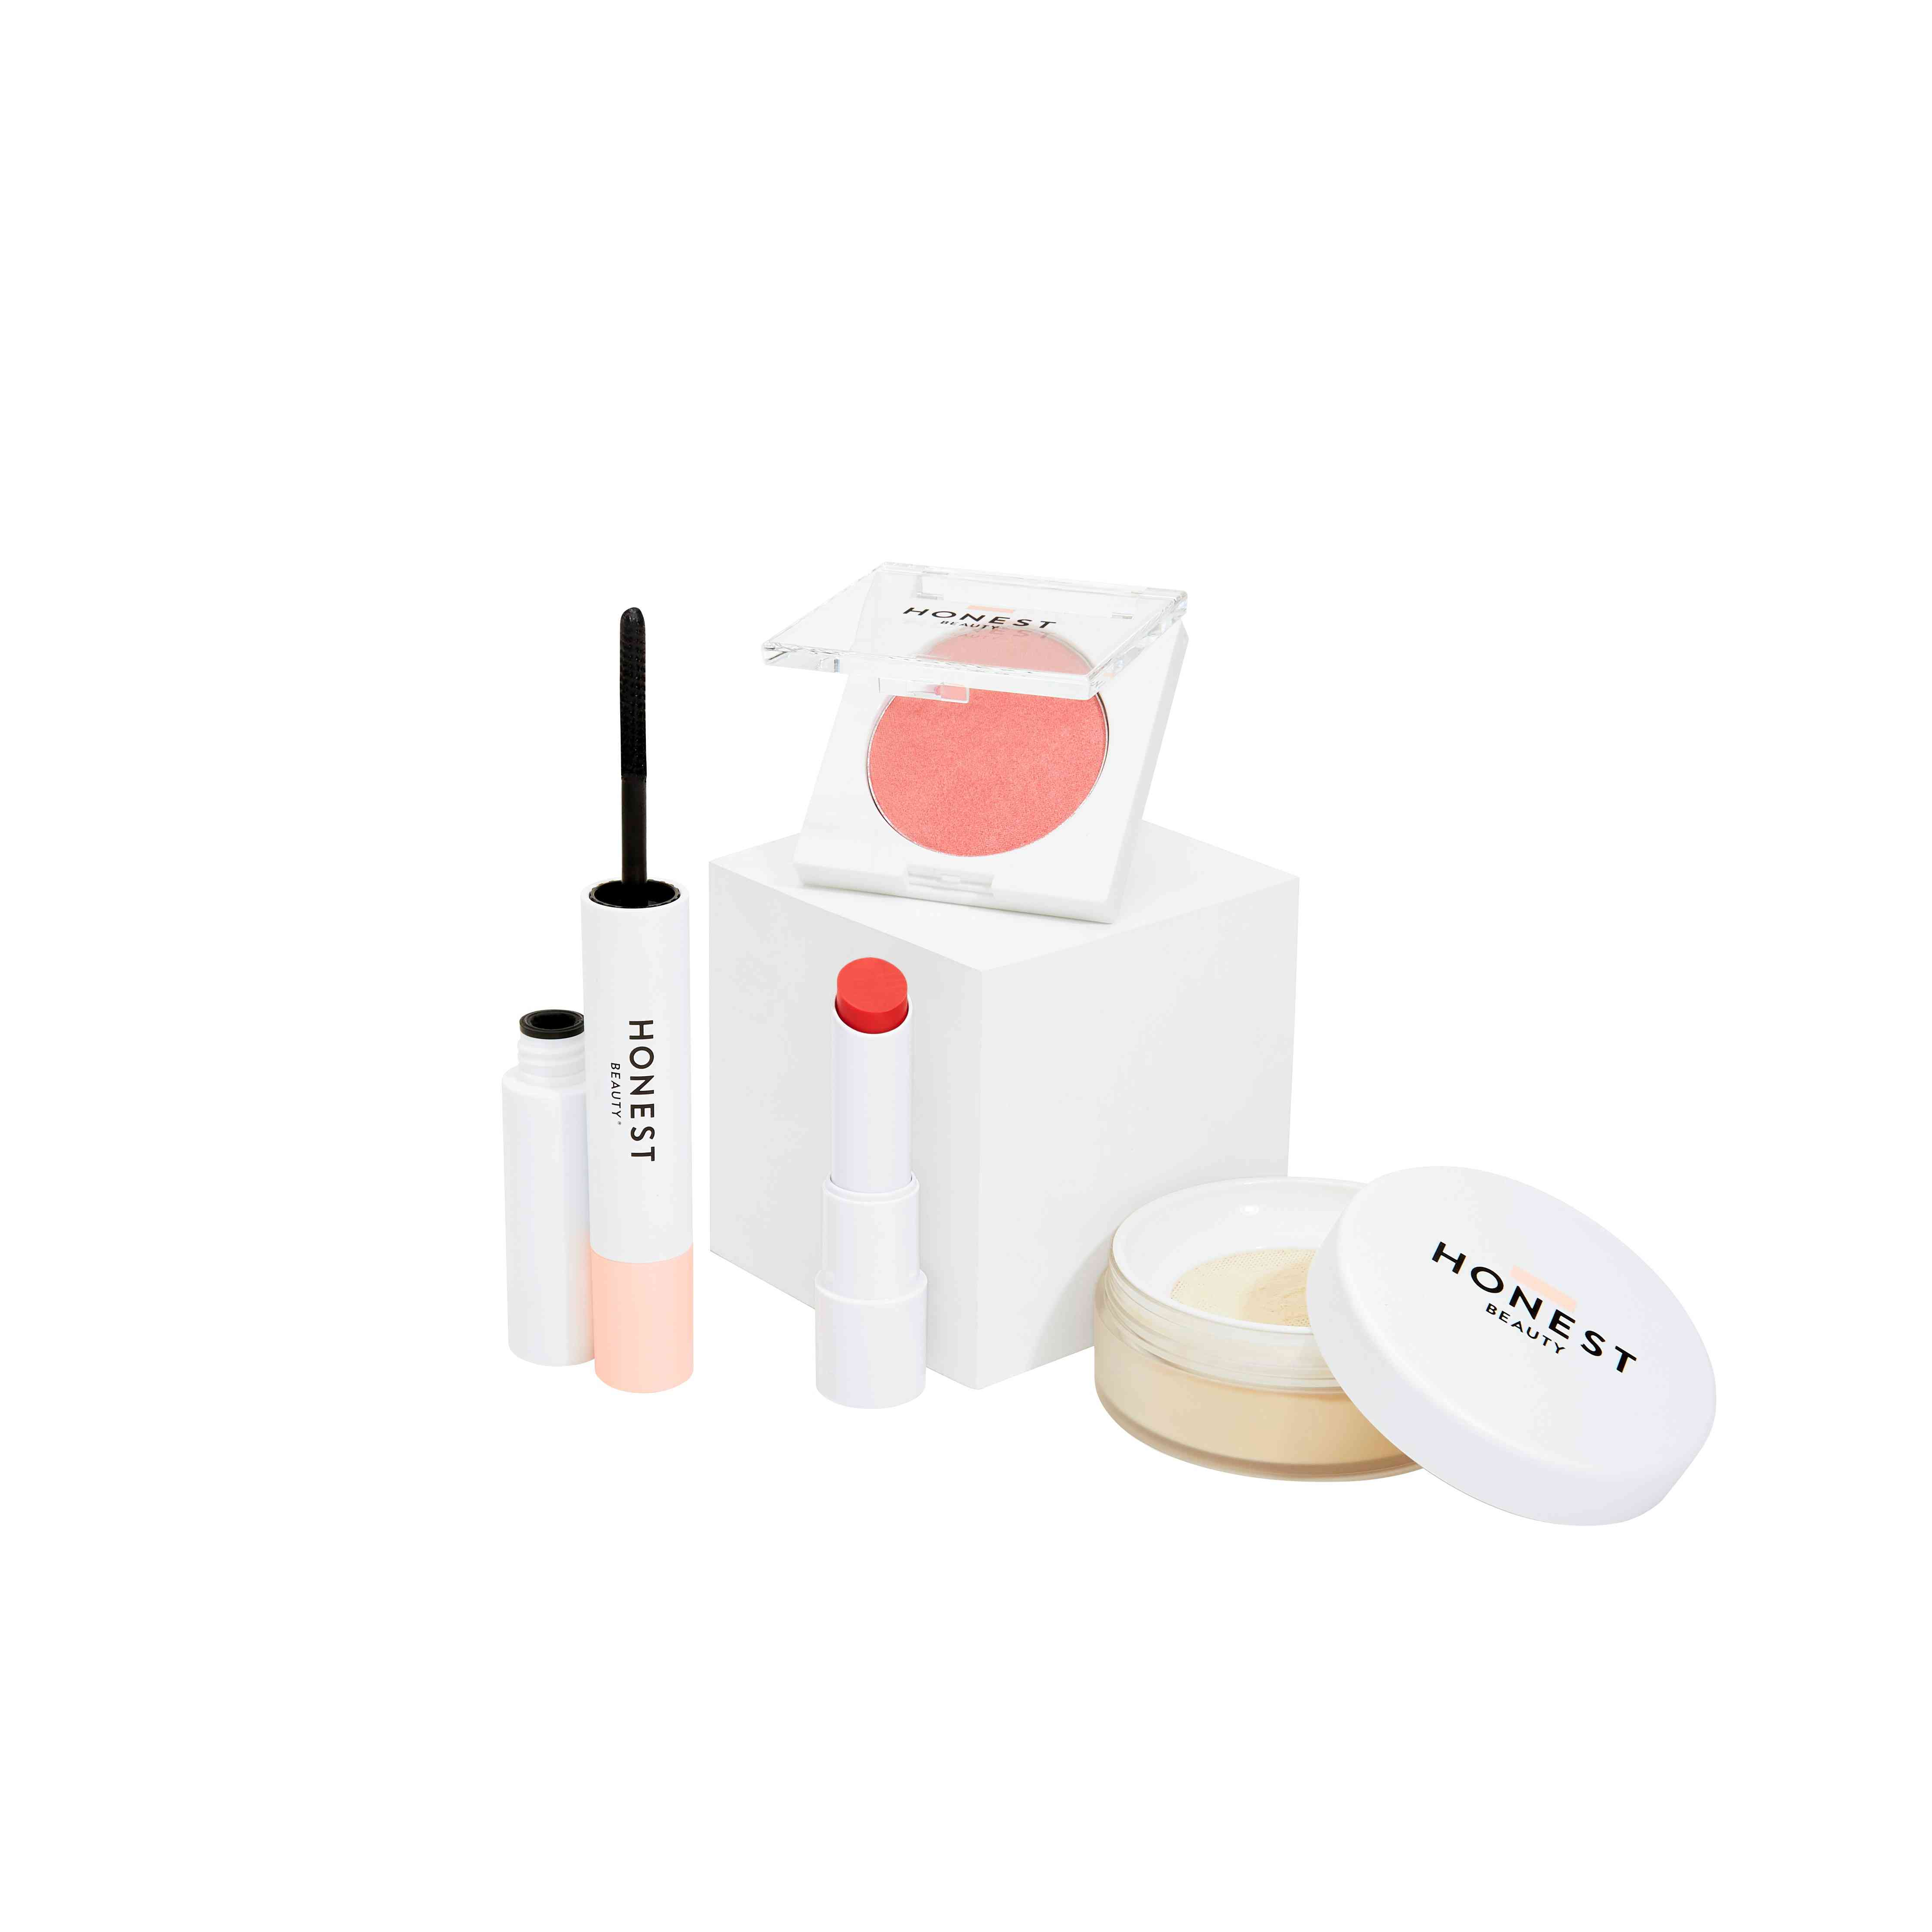 Honest Beauty All Day Perfection Touch Up Kit